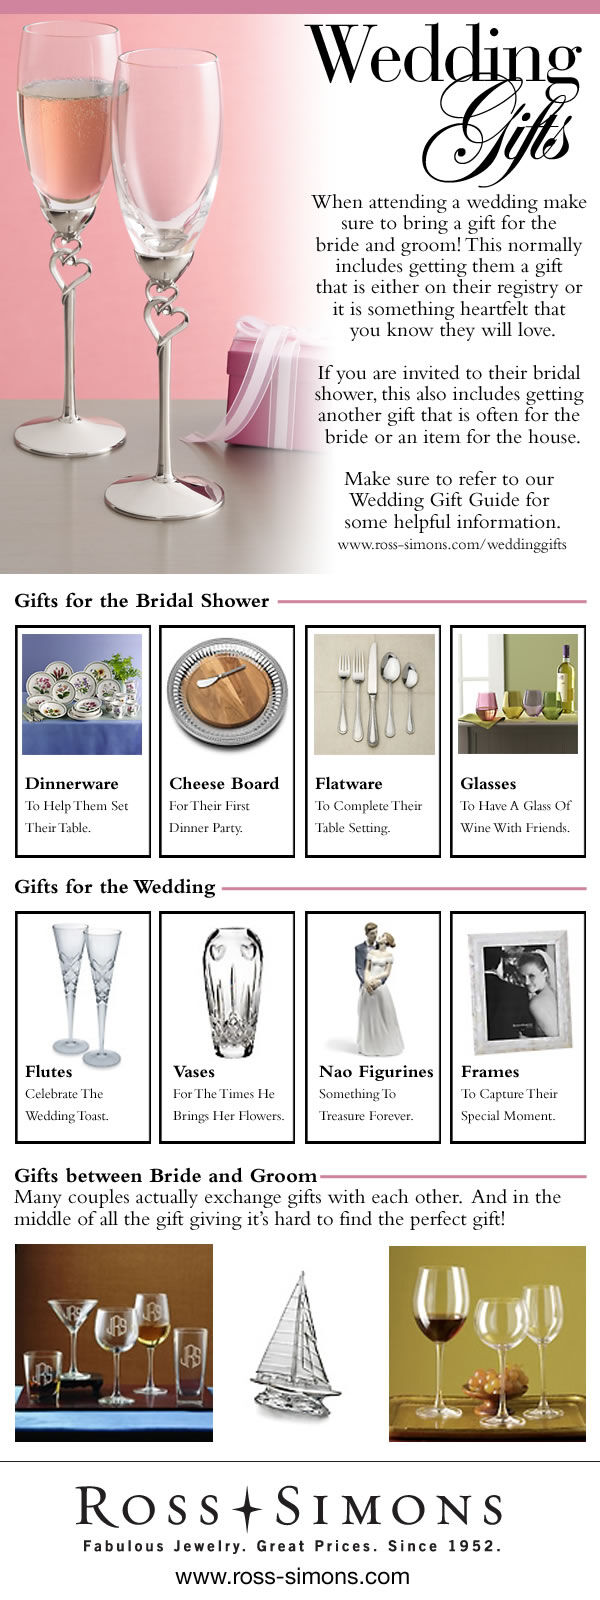 Wedding Gift Guide Infographic